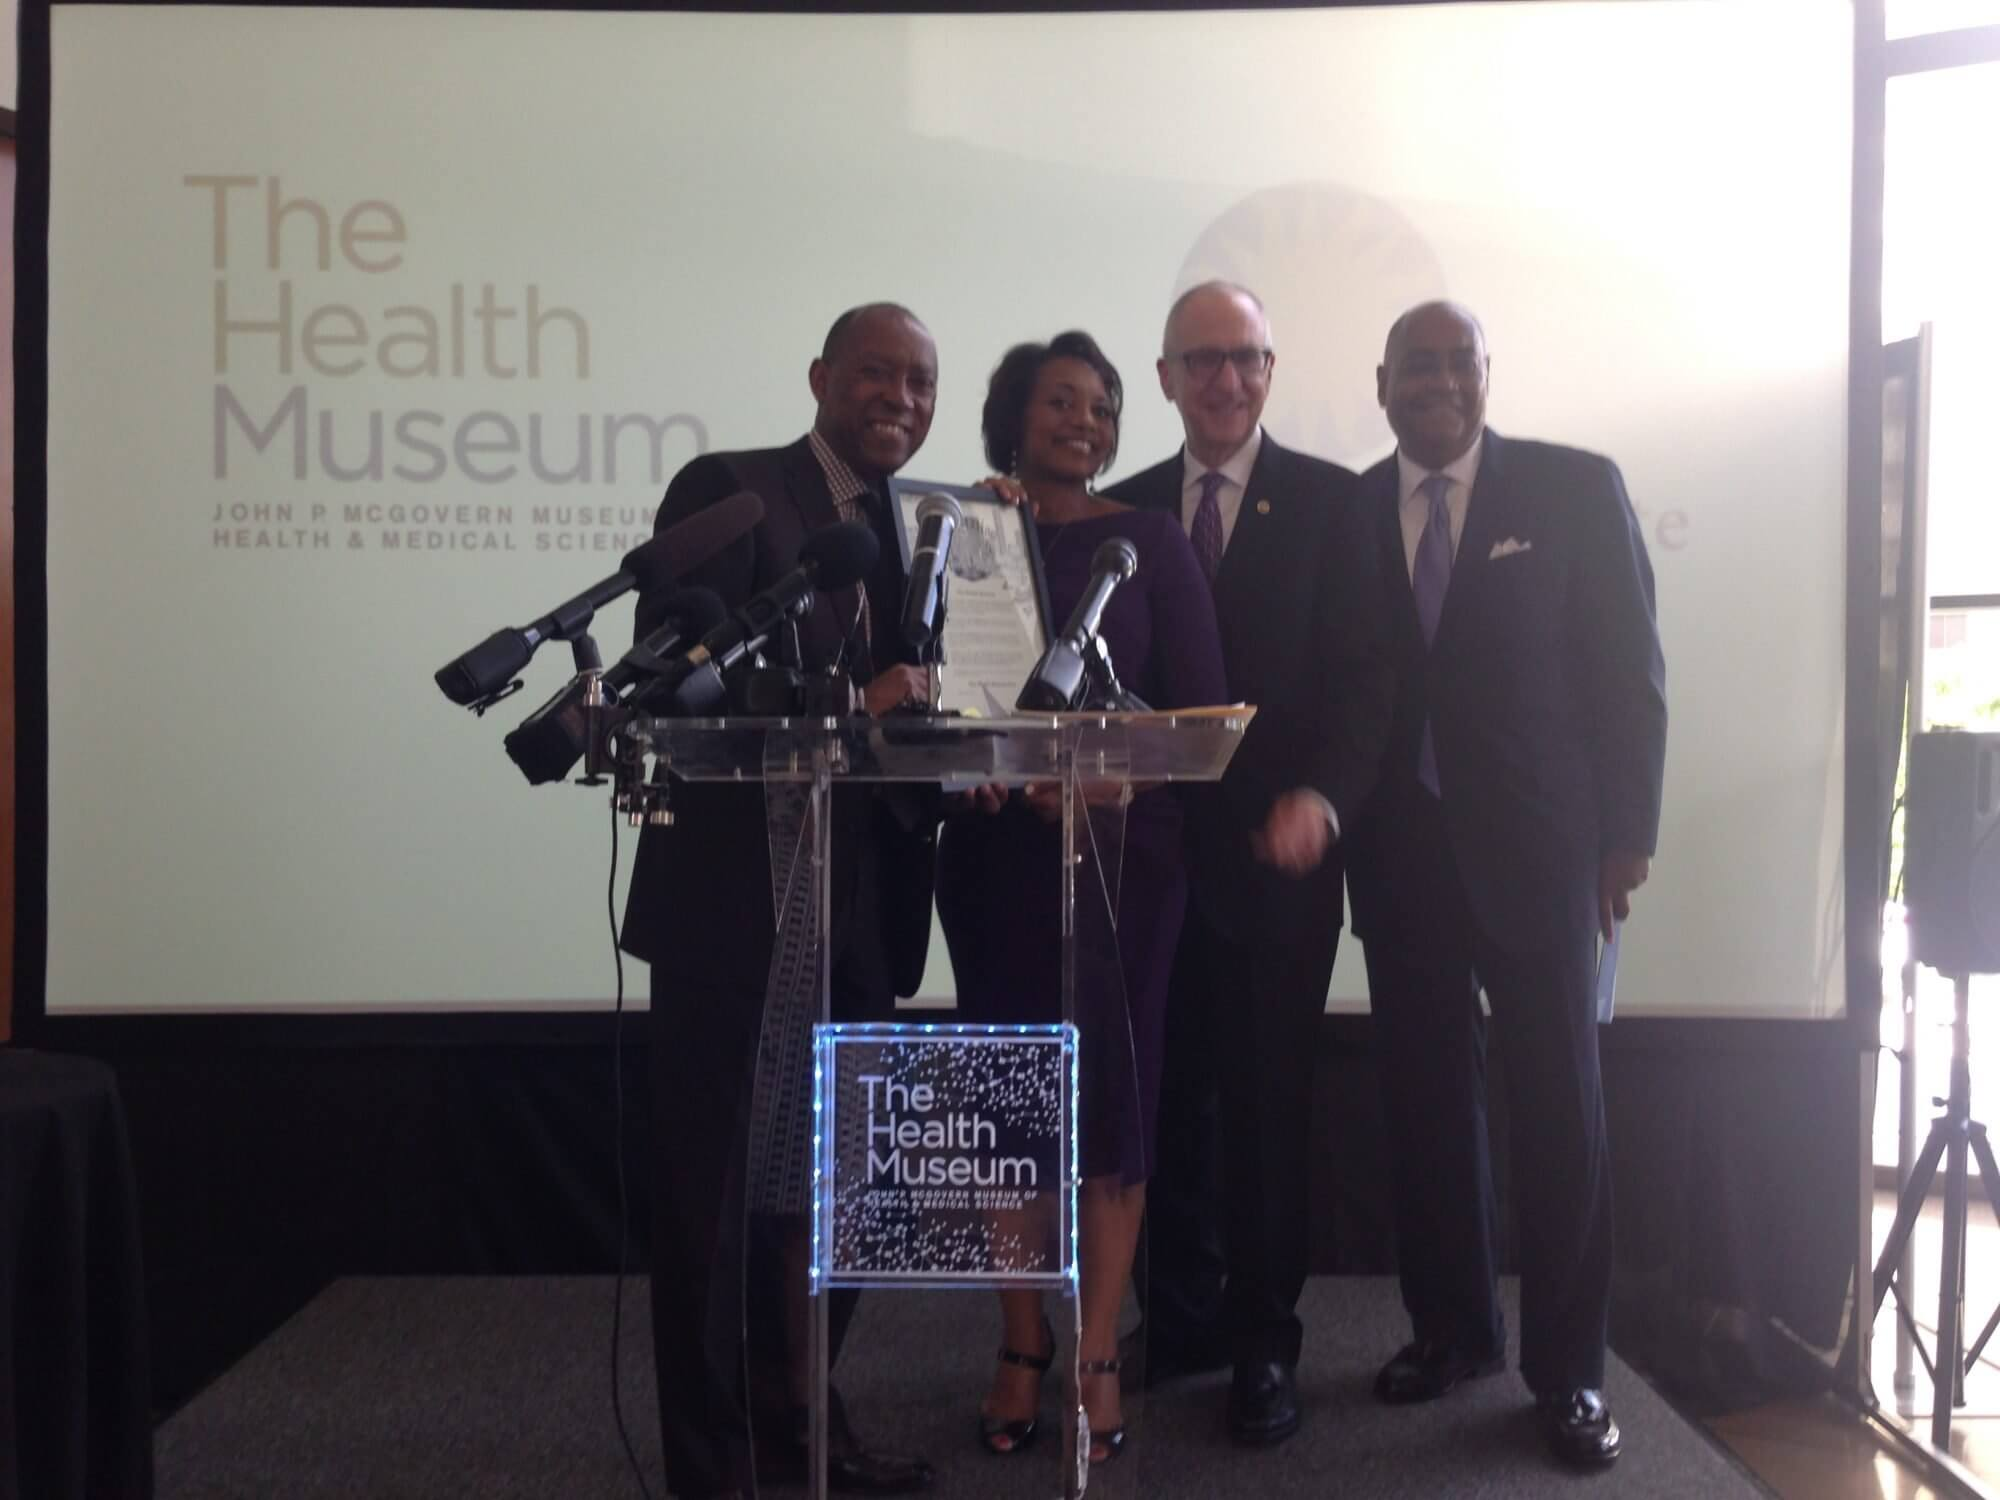 Posing onstage at The Health Museum, Houston Mayor Sylvester Turner; President and CEO of The Health Museum Melanie Johnson, Ed.D.; Smithsonian Secretary David Skorton; and Harris County Commissioner Rodney Ellis.